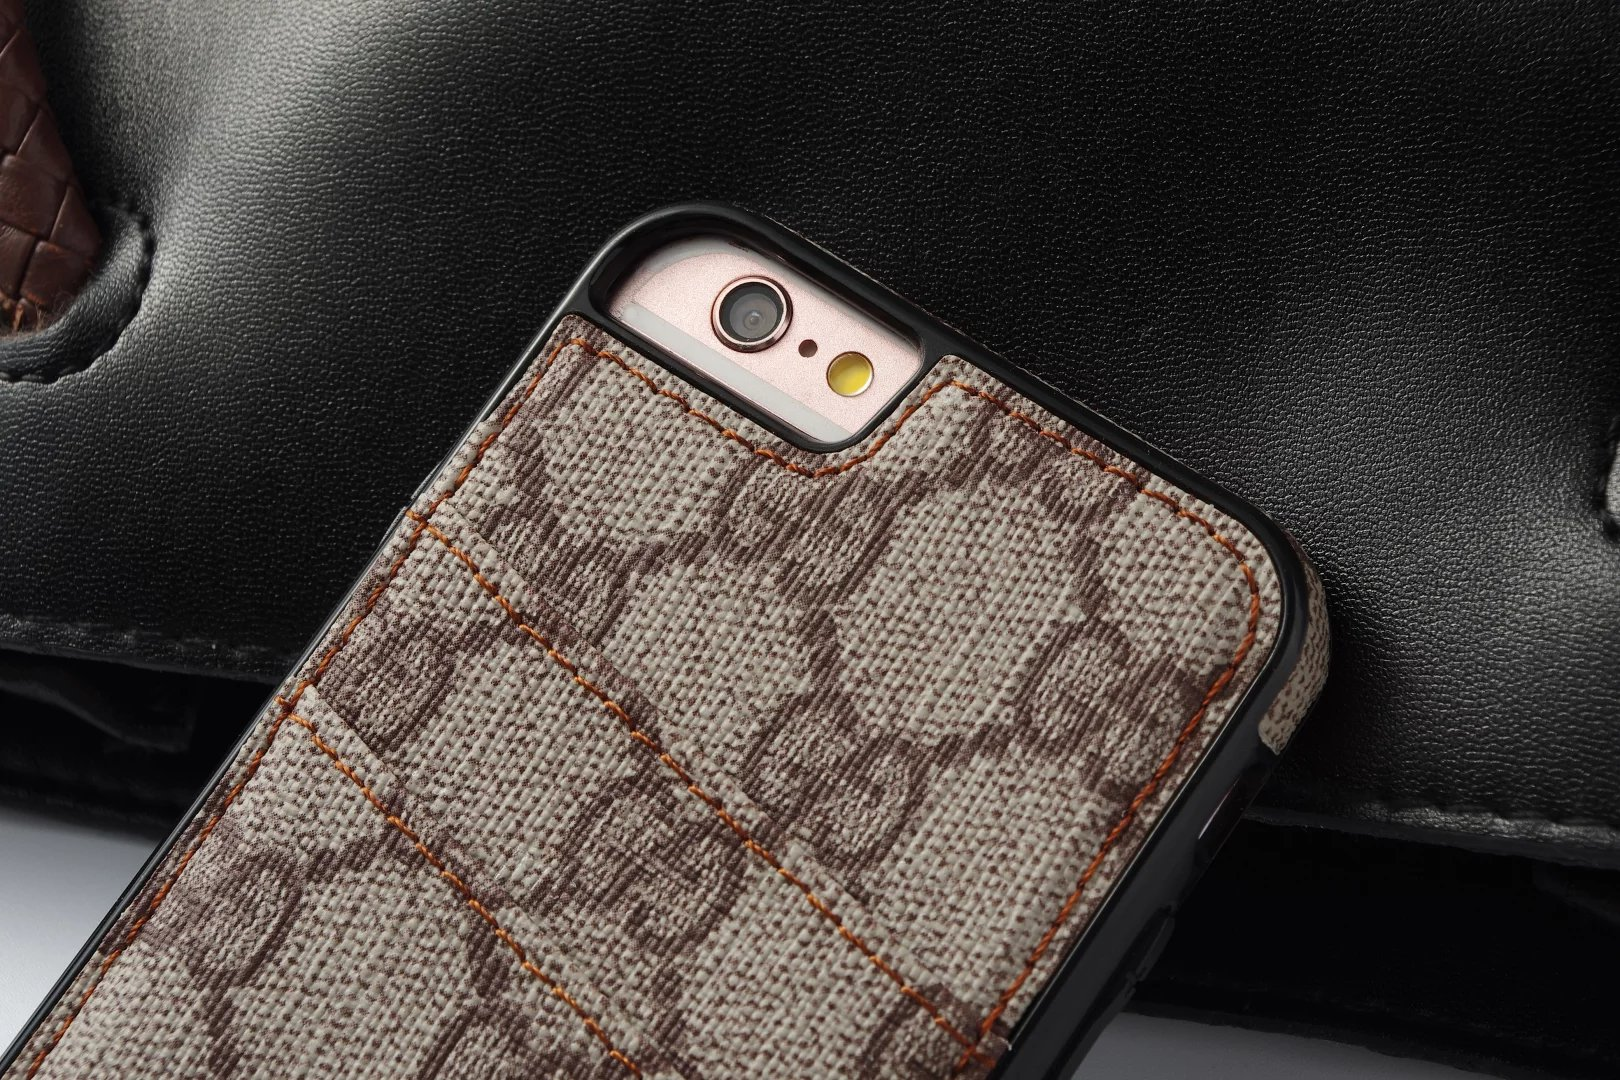 iphone silikonhülle selbst gestalten iphone klapphülle Louis Vuitton iphone7 Plus hülle iphone 7 Plus taubschutz iphone 6 display größe beste schutzhülle iphone 7 Plus iphone 7 Plus ca7 original hardca7 iphone 7 Plus handyhüllen für htc one